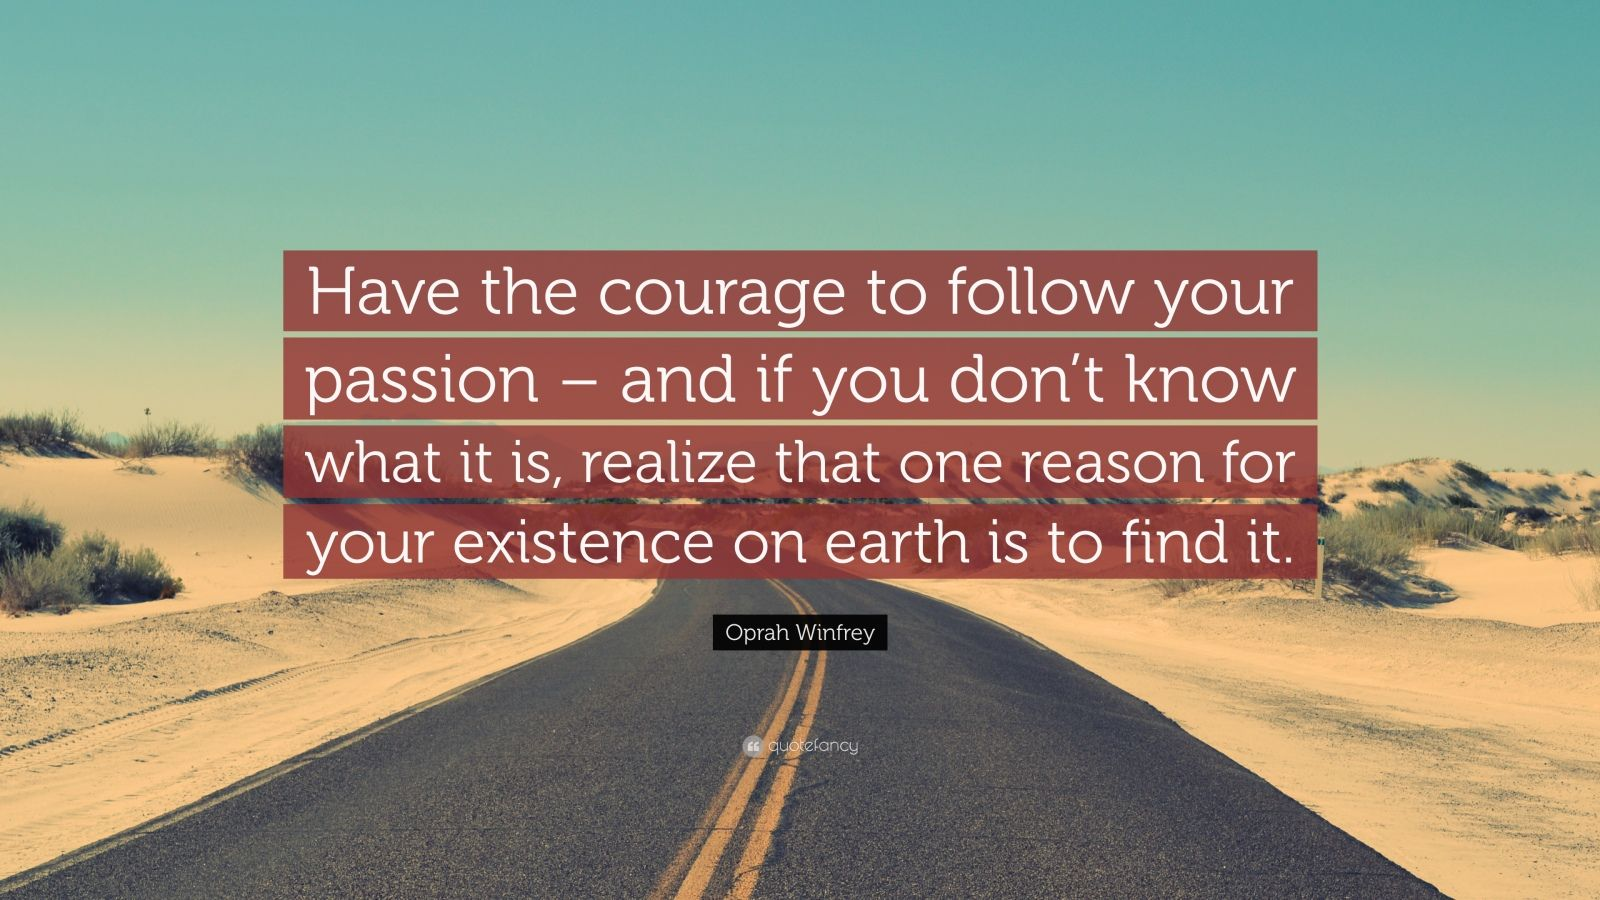 """Oprah Winfrey Quote: """"Have the courage to follow your passion – and if you don't know what it is, realize that one reason for your existence on earth is to find it."""""""